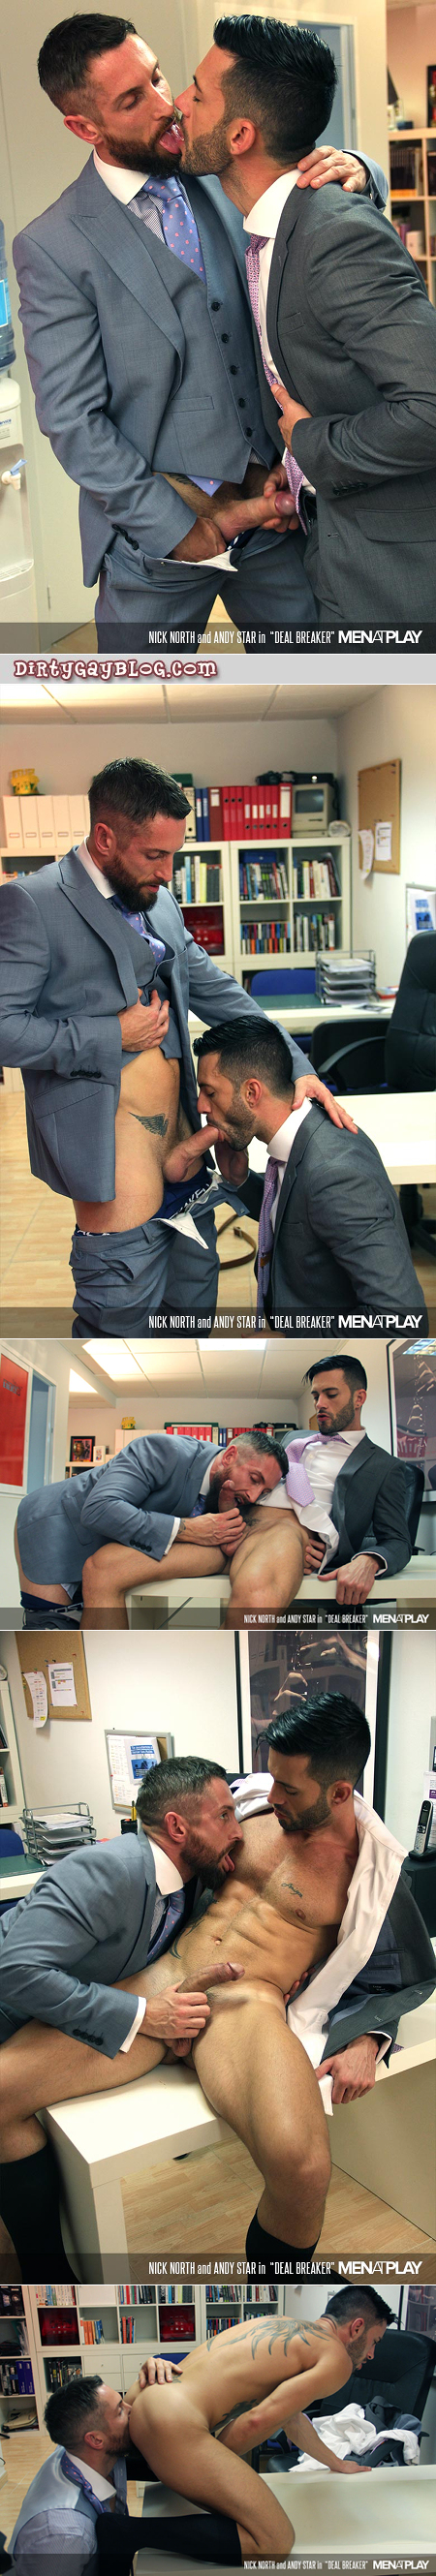 Muscular men in suits having gay sex at the office.